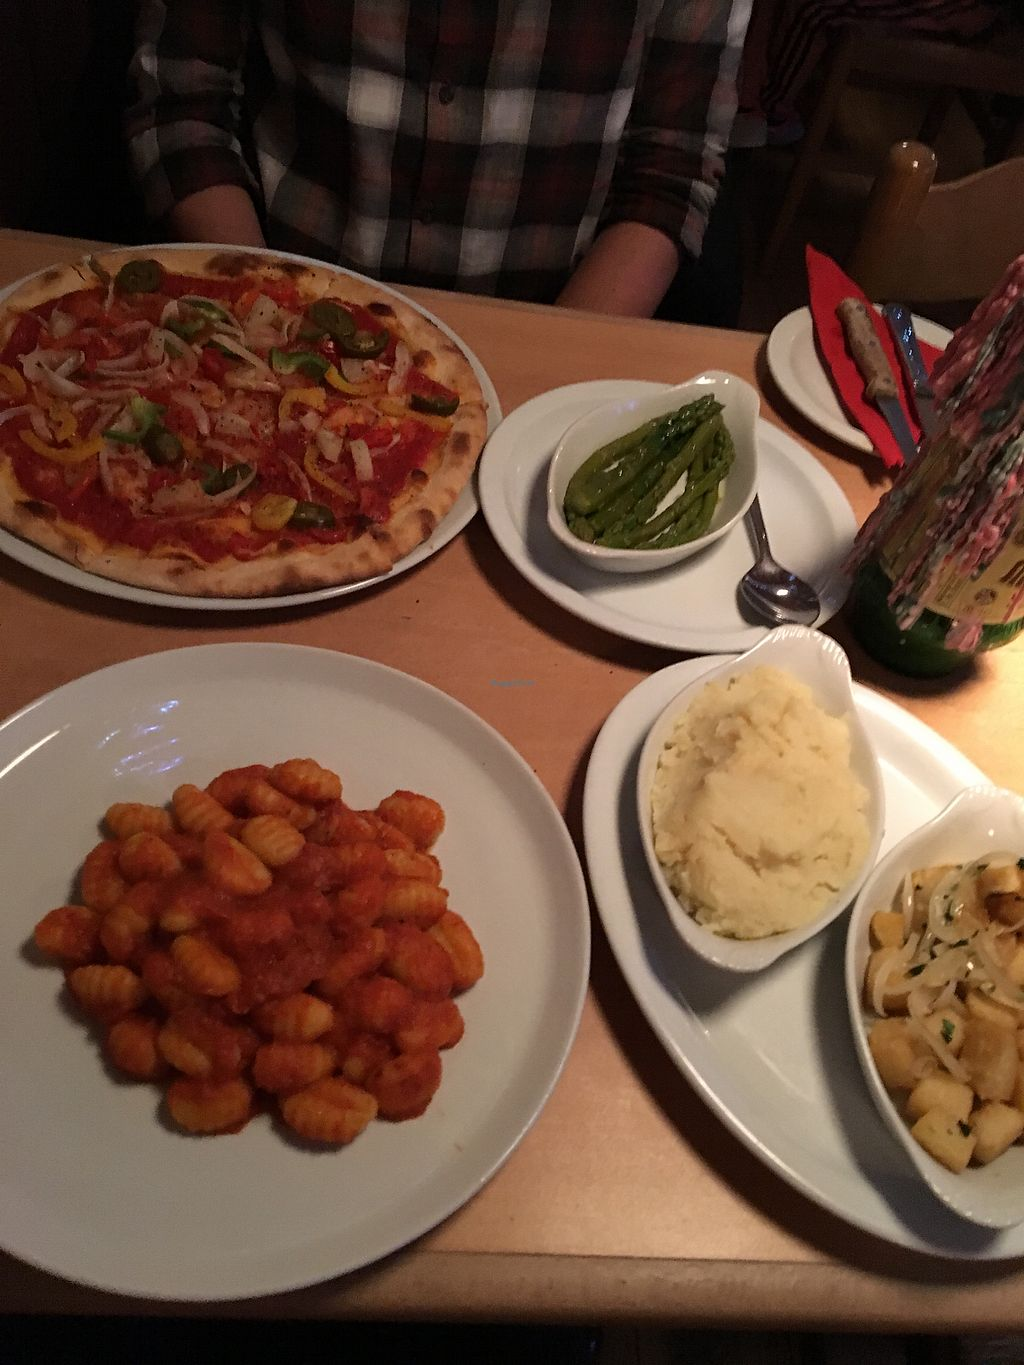 """Photo of Arlecchino  by <a href=""""/members/profile/LaurenRobinson"""">LaurenRobinson</a> <br/>Vegano Pizza, Gnocchi Napoletana, Sauted Potatoes, asparagus and mashed potato  <br/> February 22, 2018  - <a href='/contact/abuse/image/112254/362530'>Report</a>"""